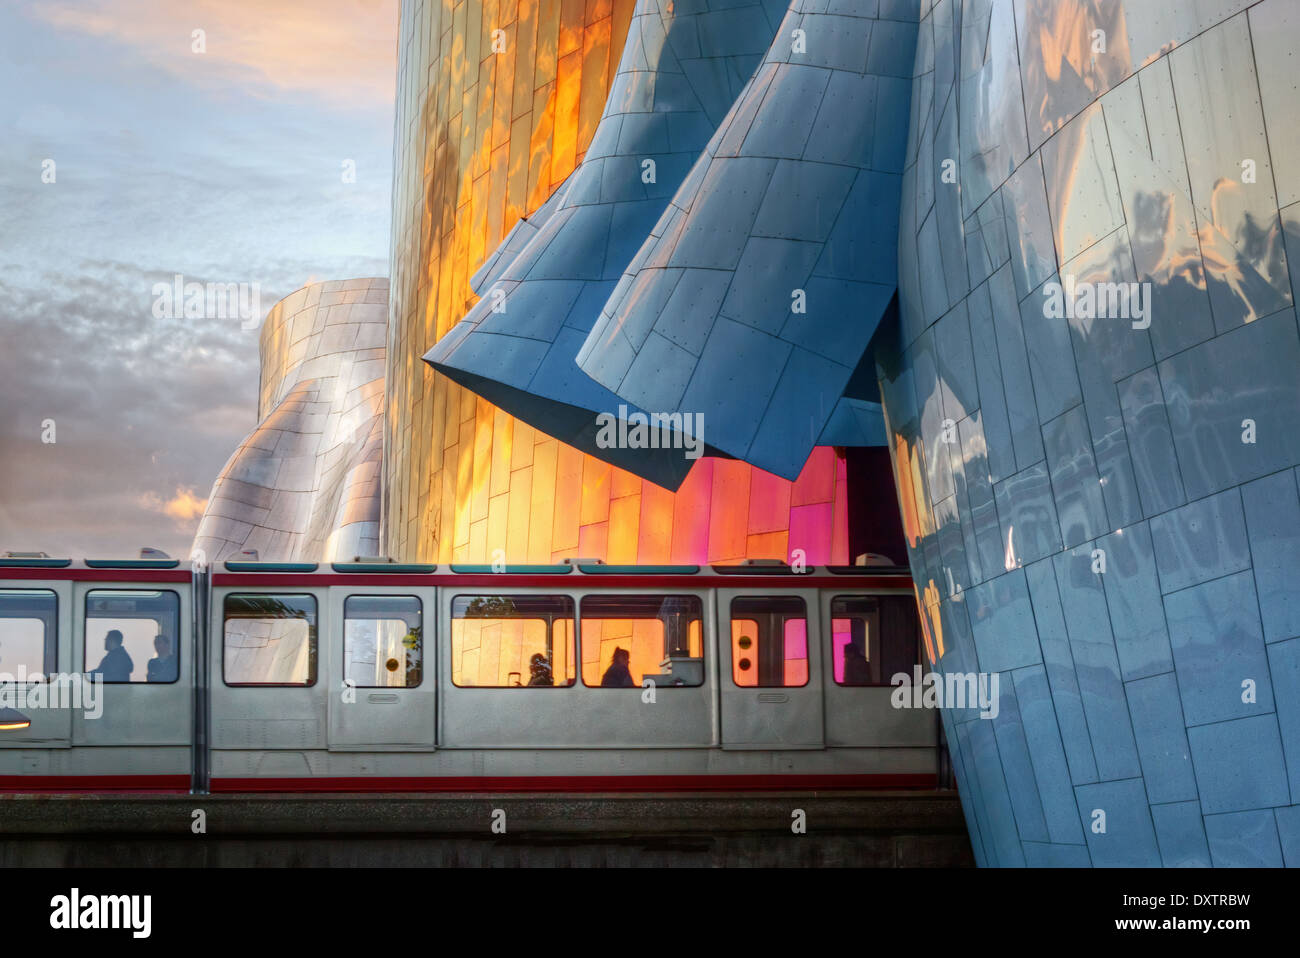 Seattles Monorail - Stock Image